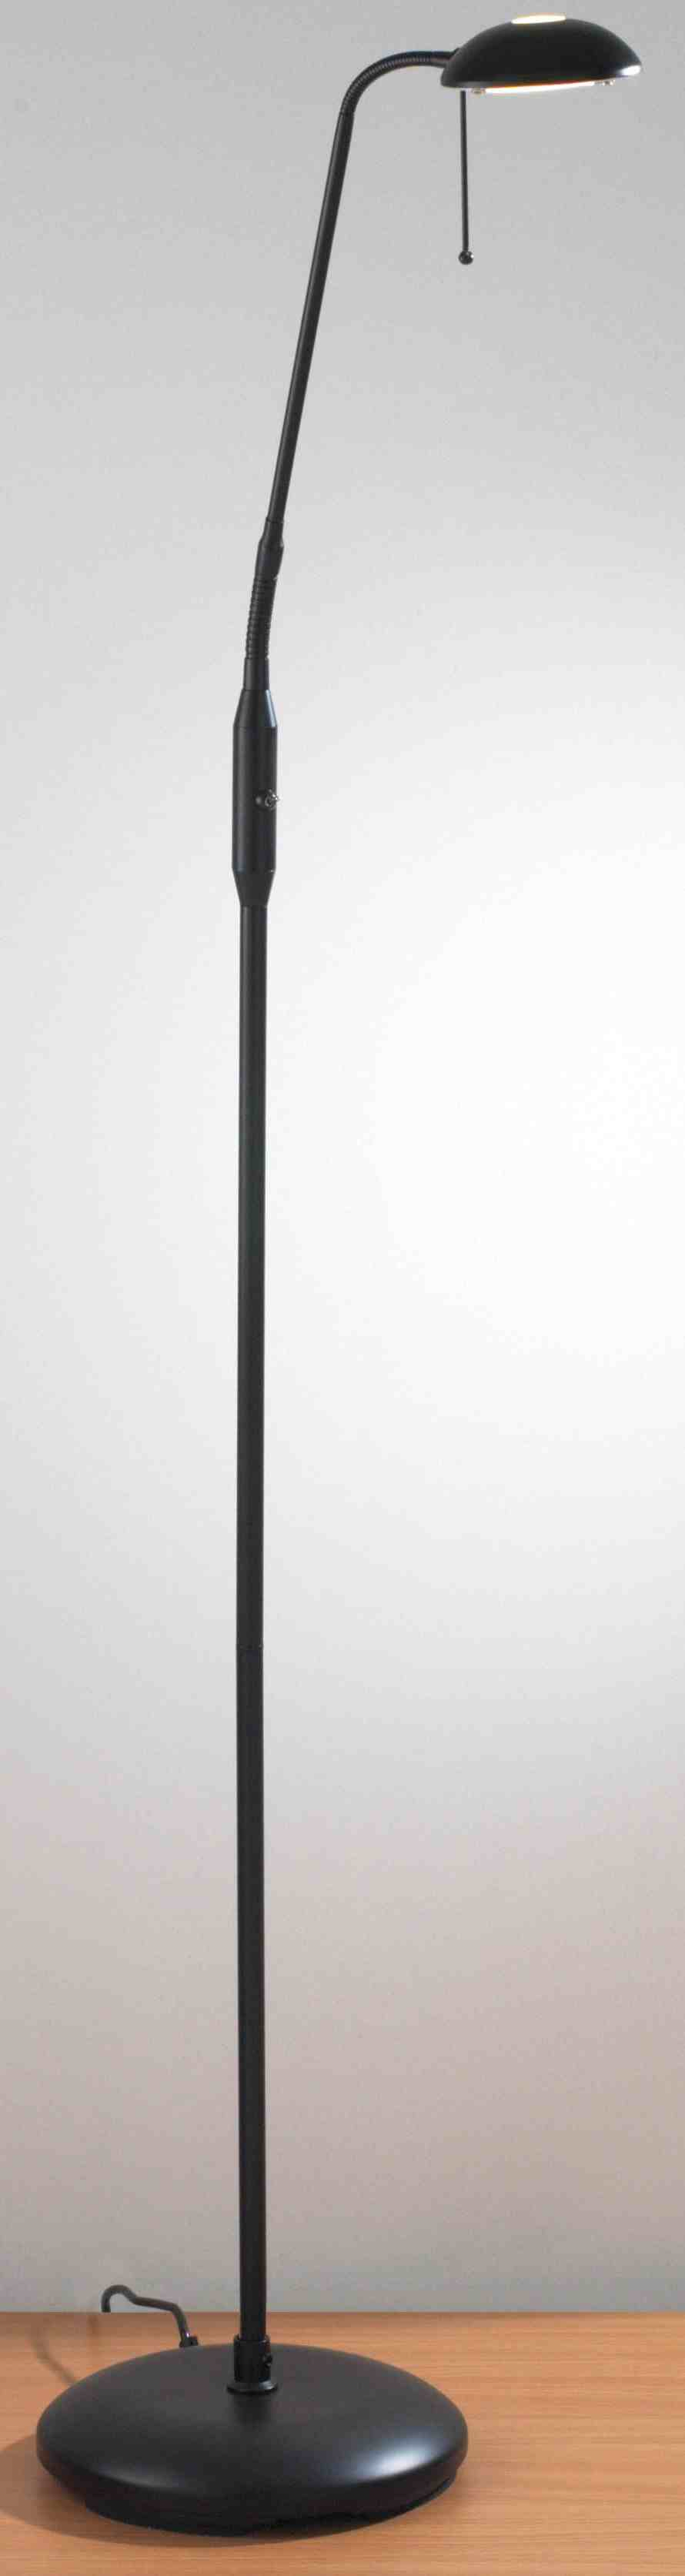 Halo floor lamp with switch on pole black and brown interiors